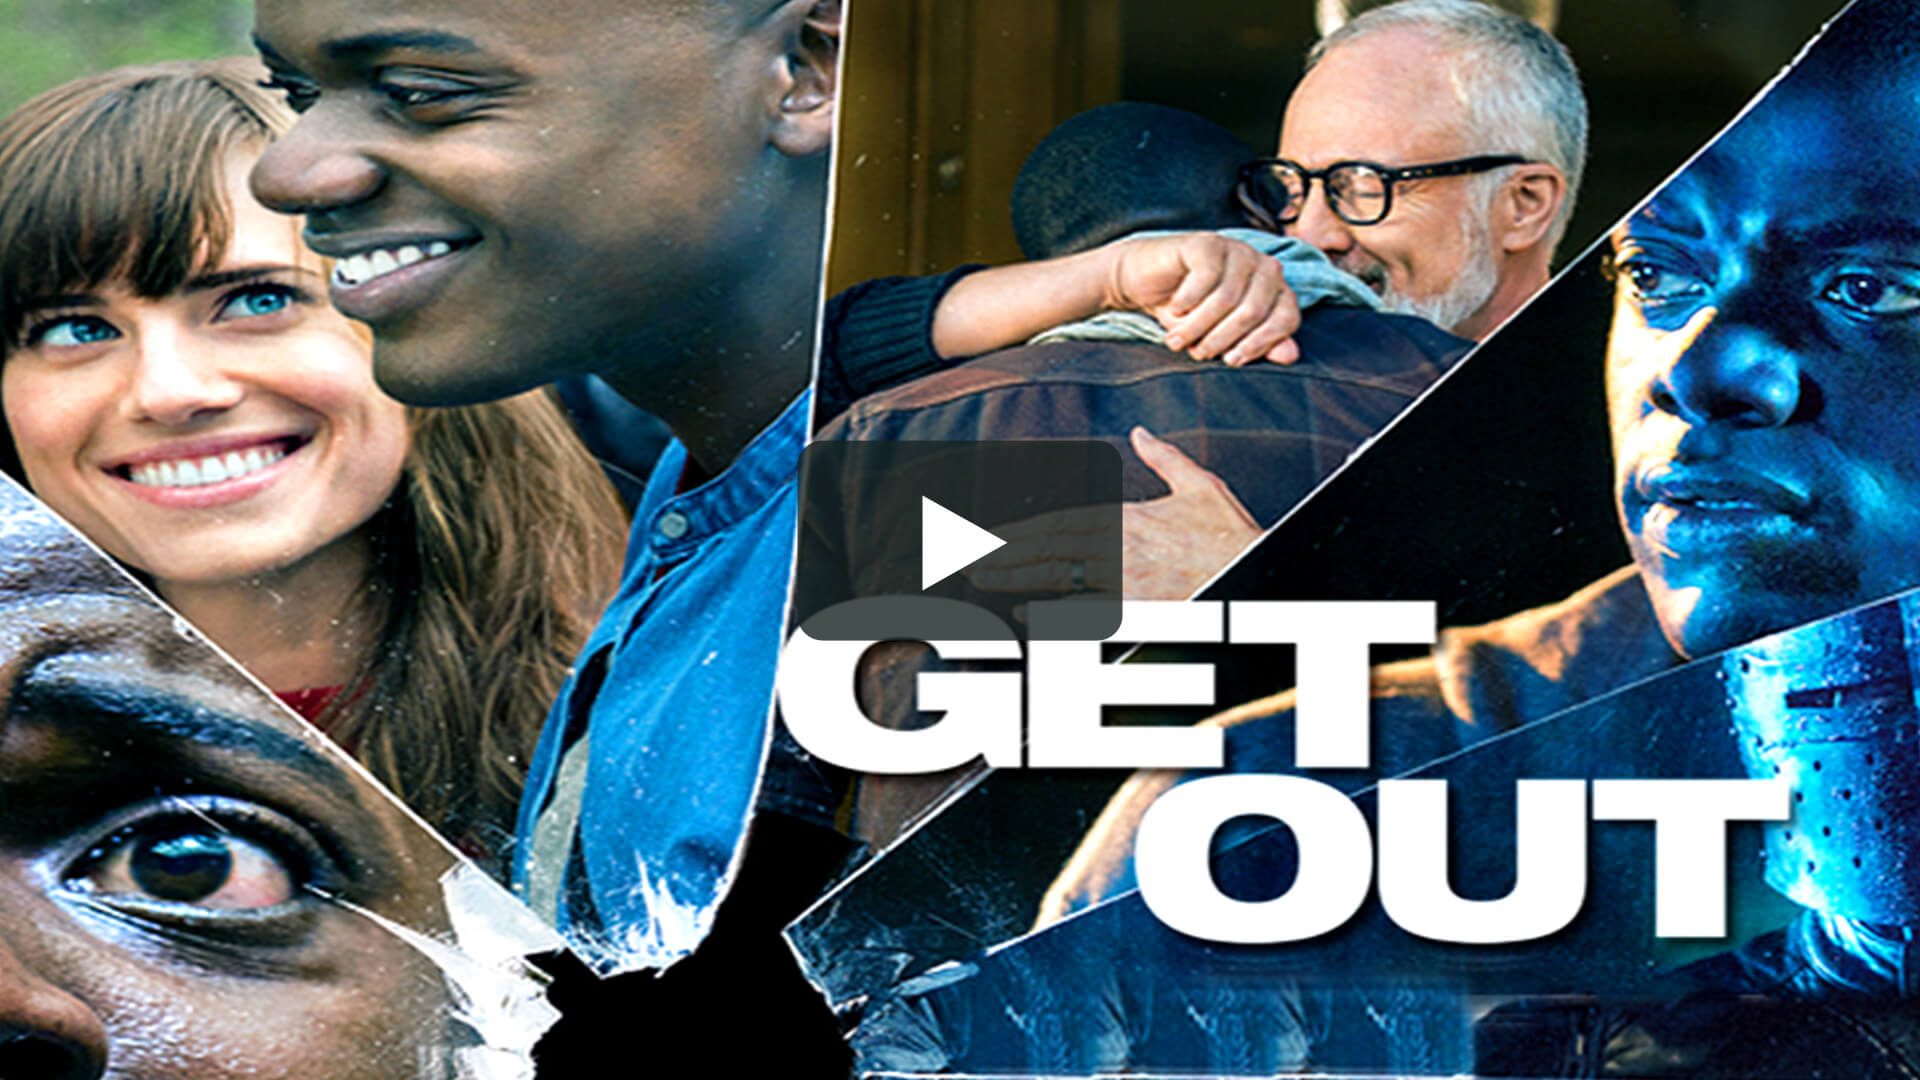 Get out - 逃出絕命鎮